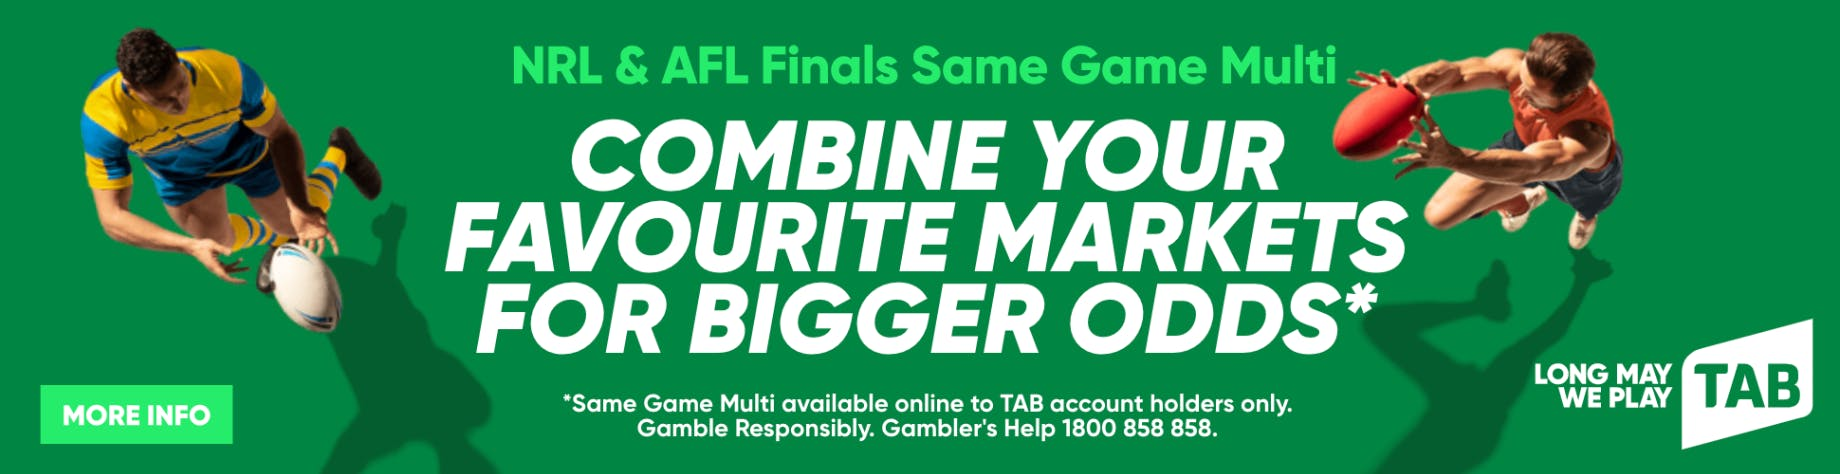 How to bet on nrl games dota 2 lounge betting error 651